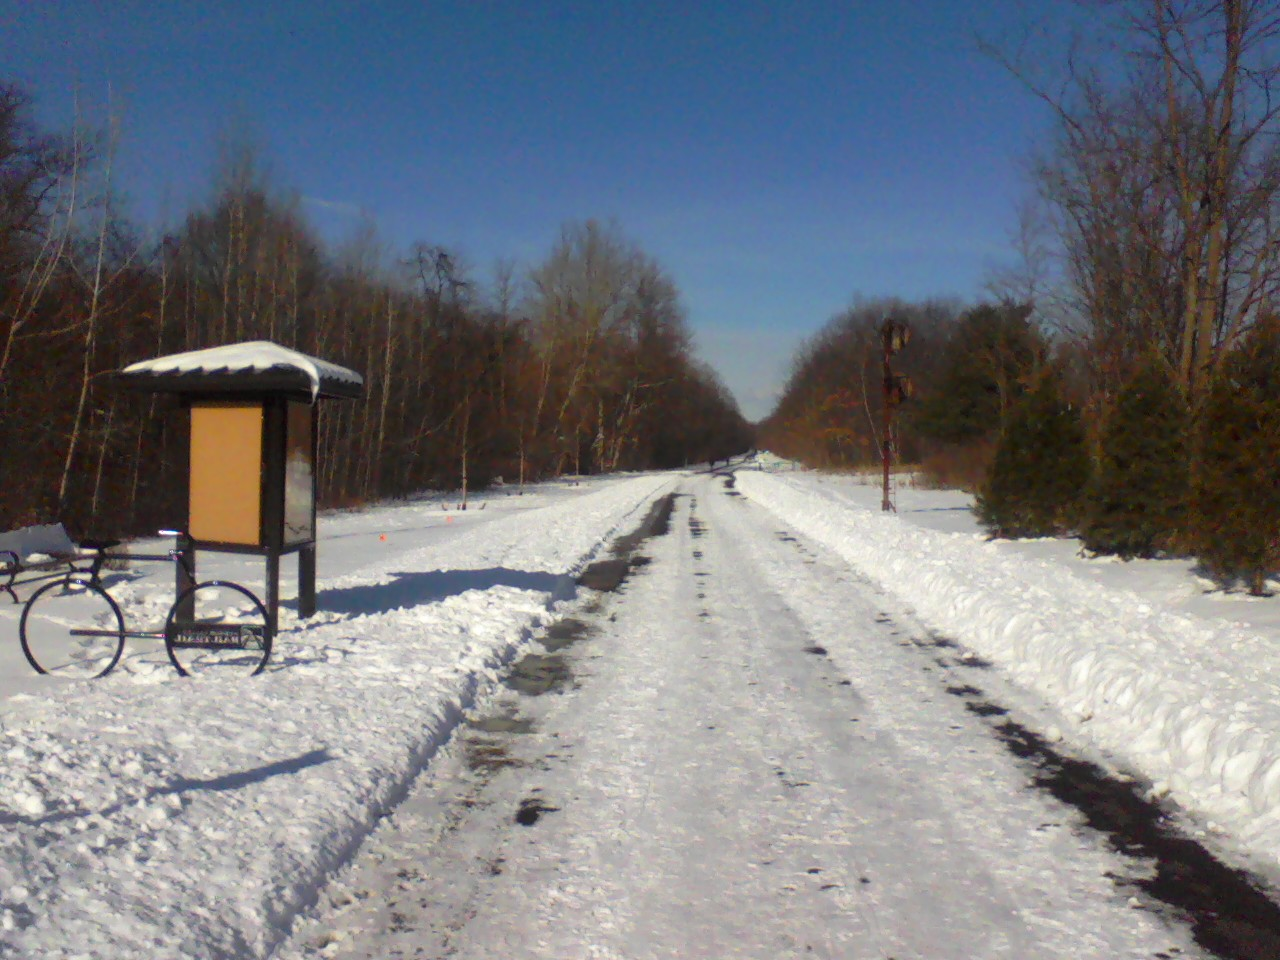 Hudson_Valley_Rail_Trail.jpg